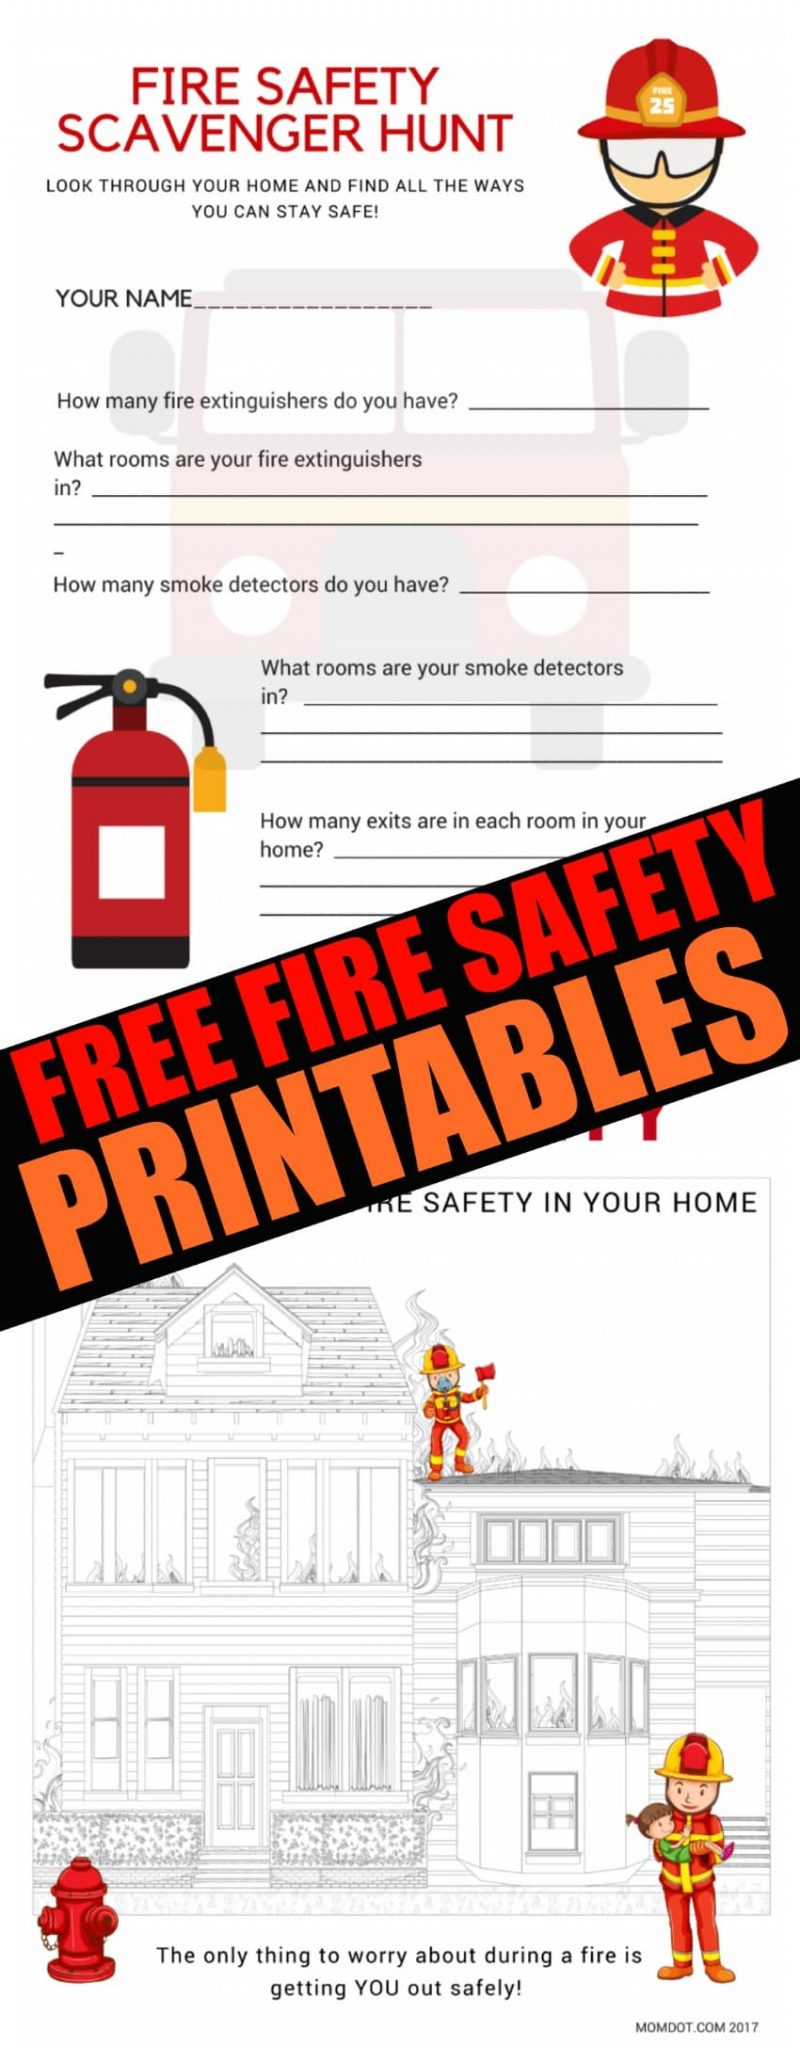 Free Fire Safety Printables, Home Fire Drill Safety Month, help your kids understand what to do in a fire! Download free